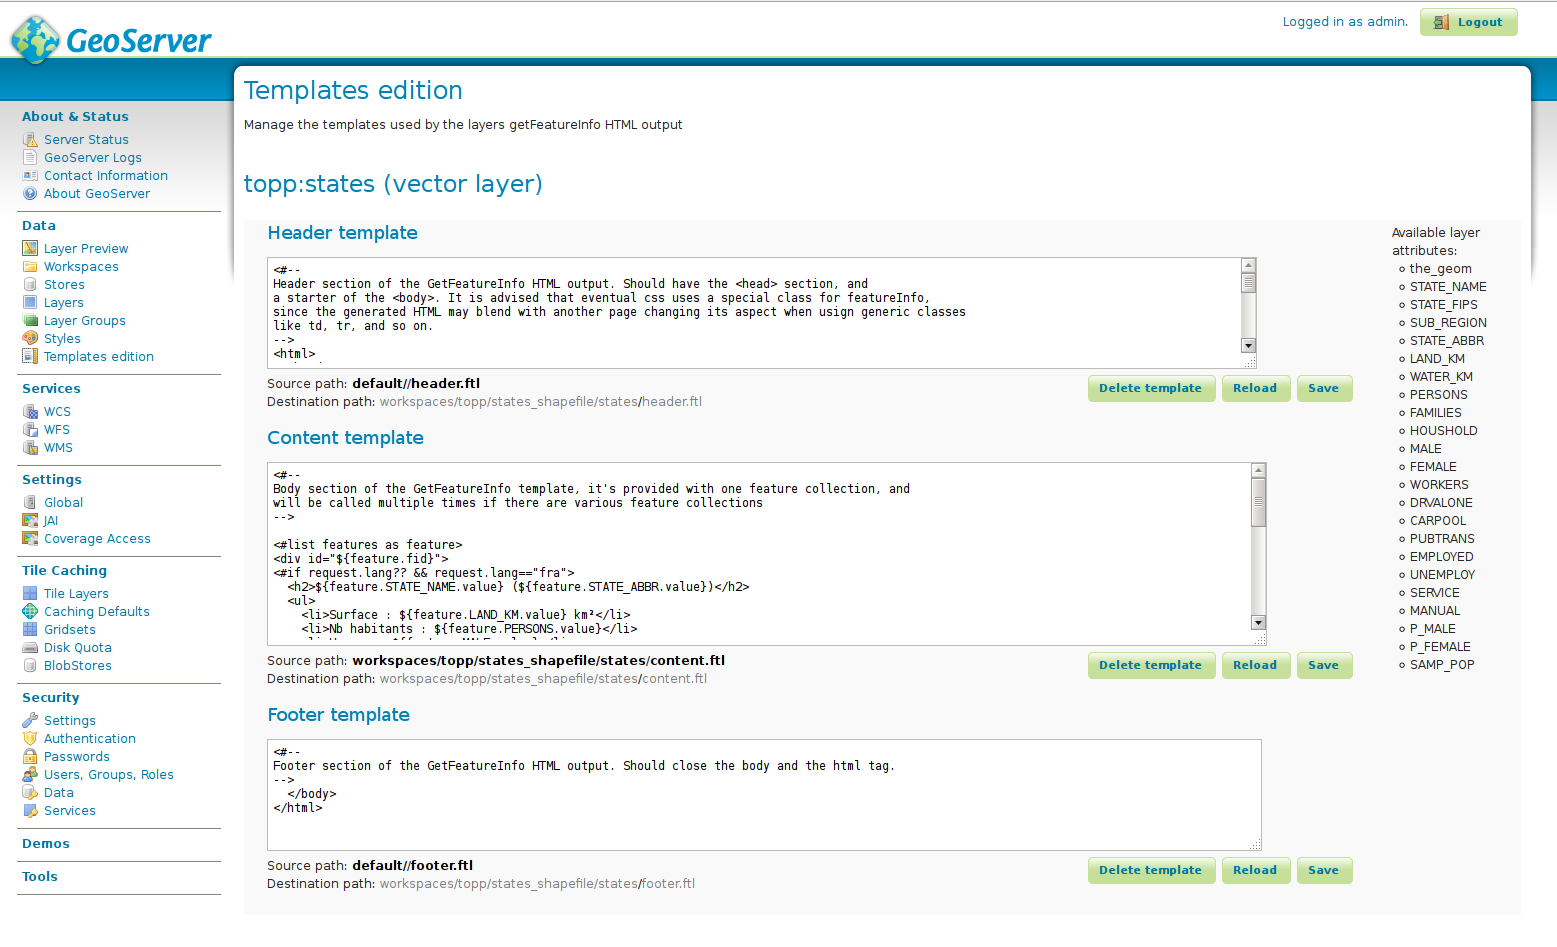 doc/en/user/source/community/template-editor/images/edition-page.png